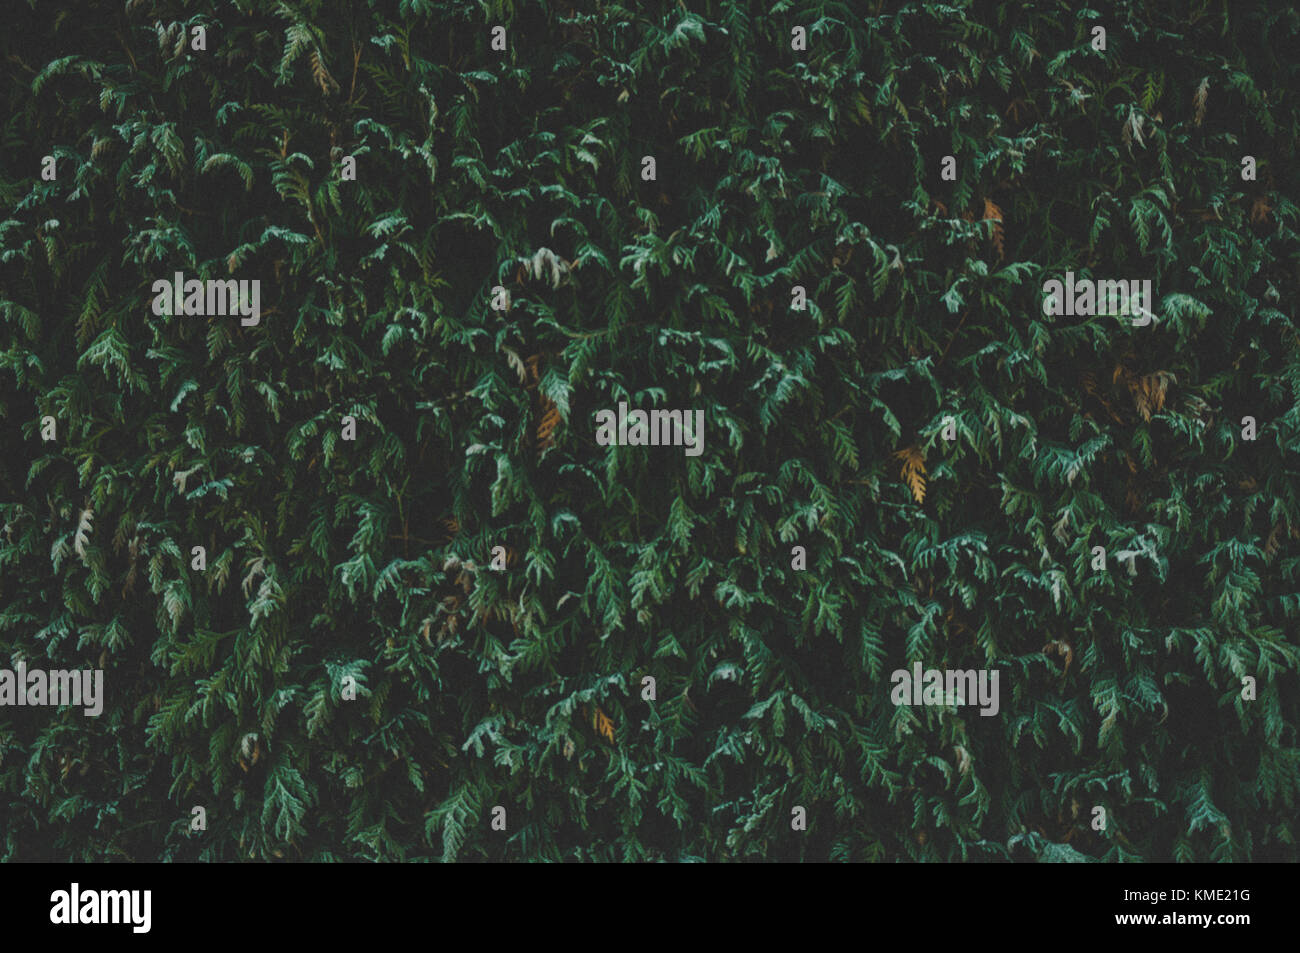 Cupressaceae. Leaves in winter. Closeup view. Background texture. - Stock Image